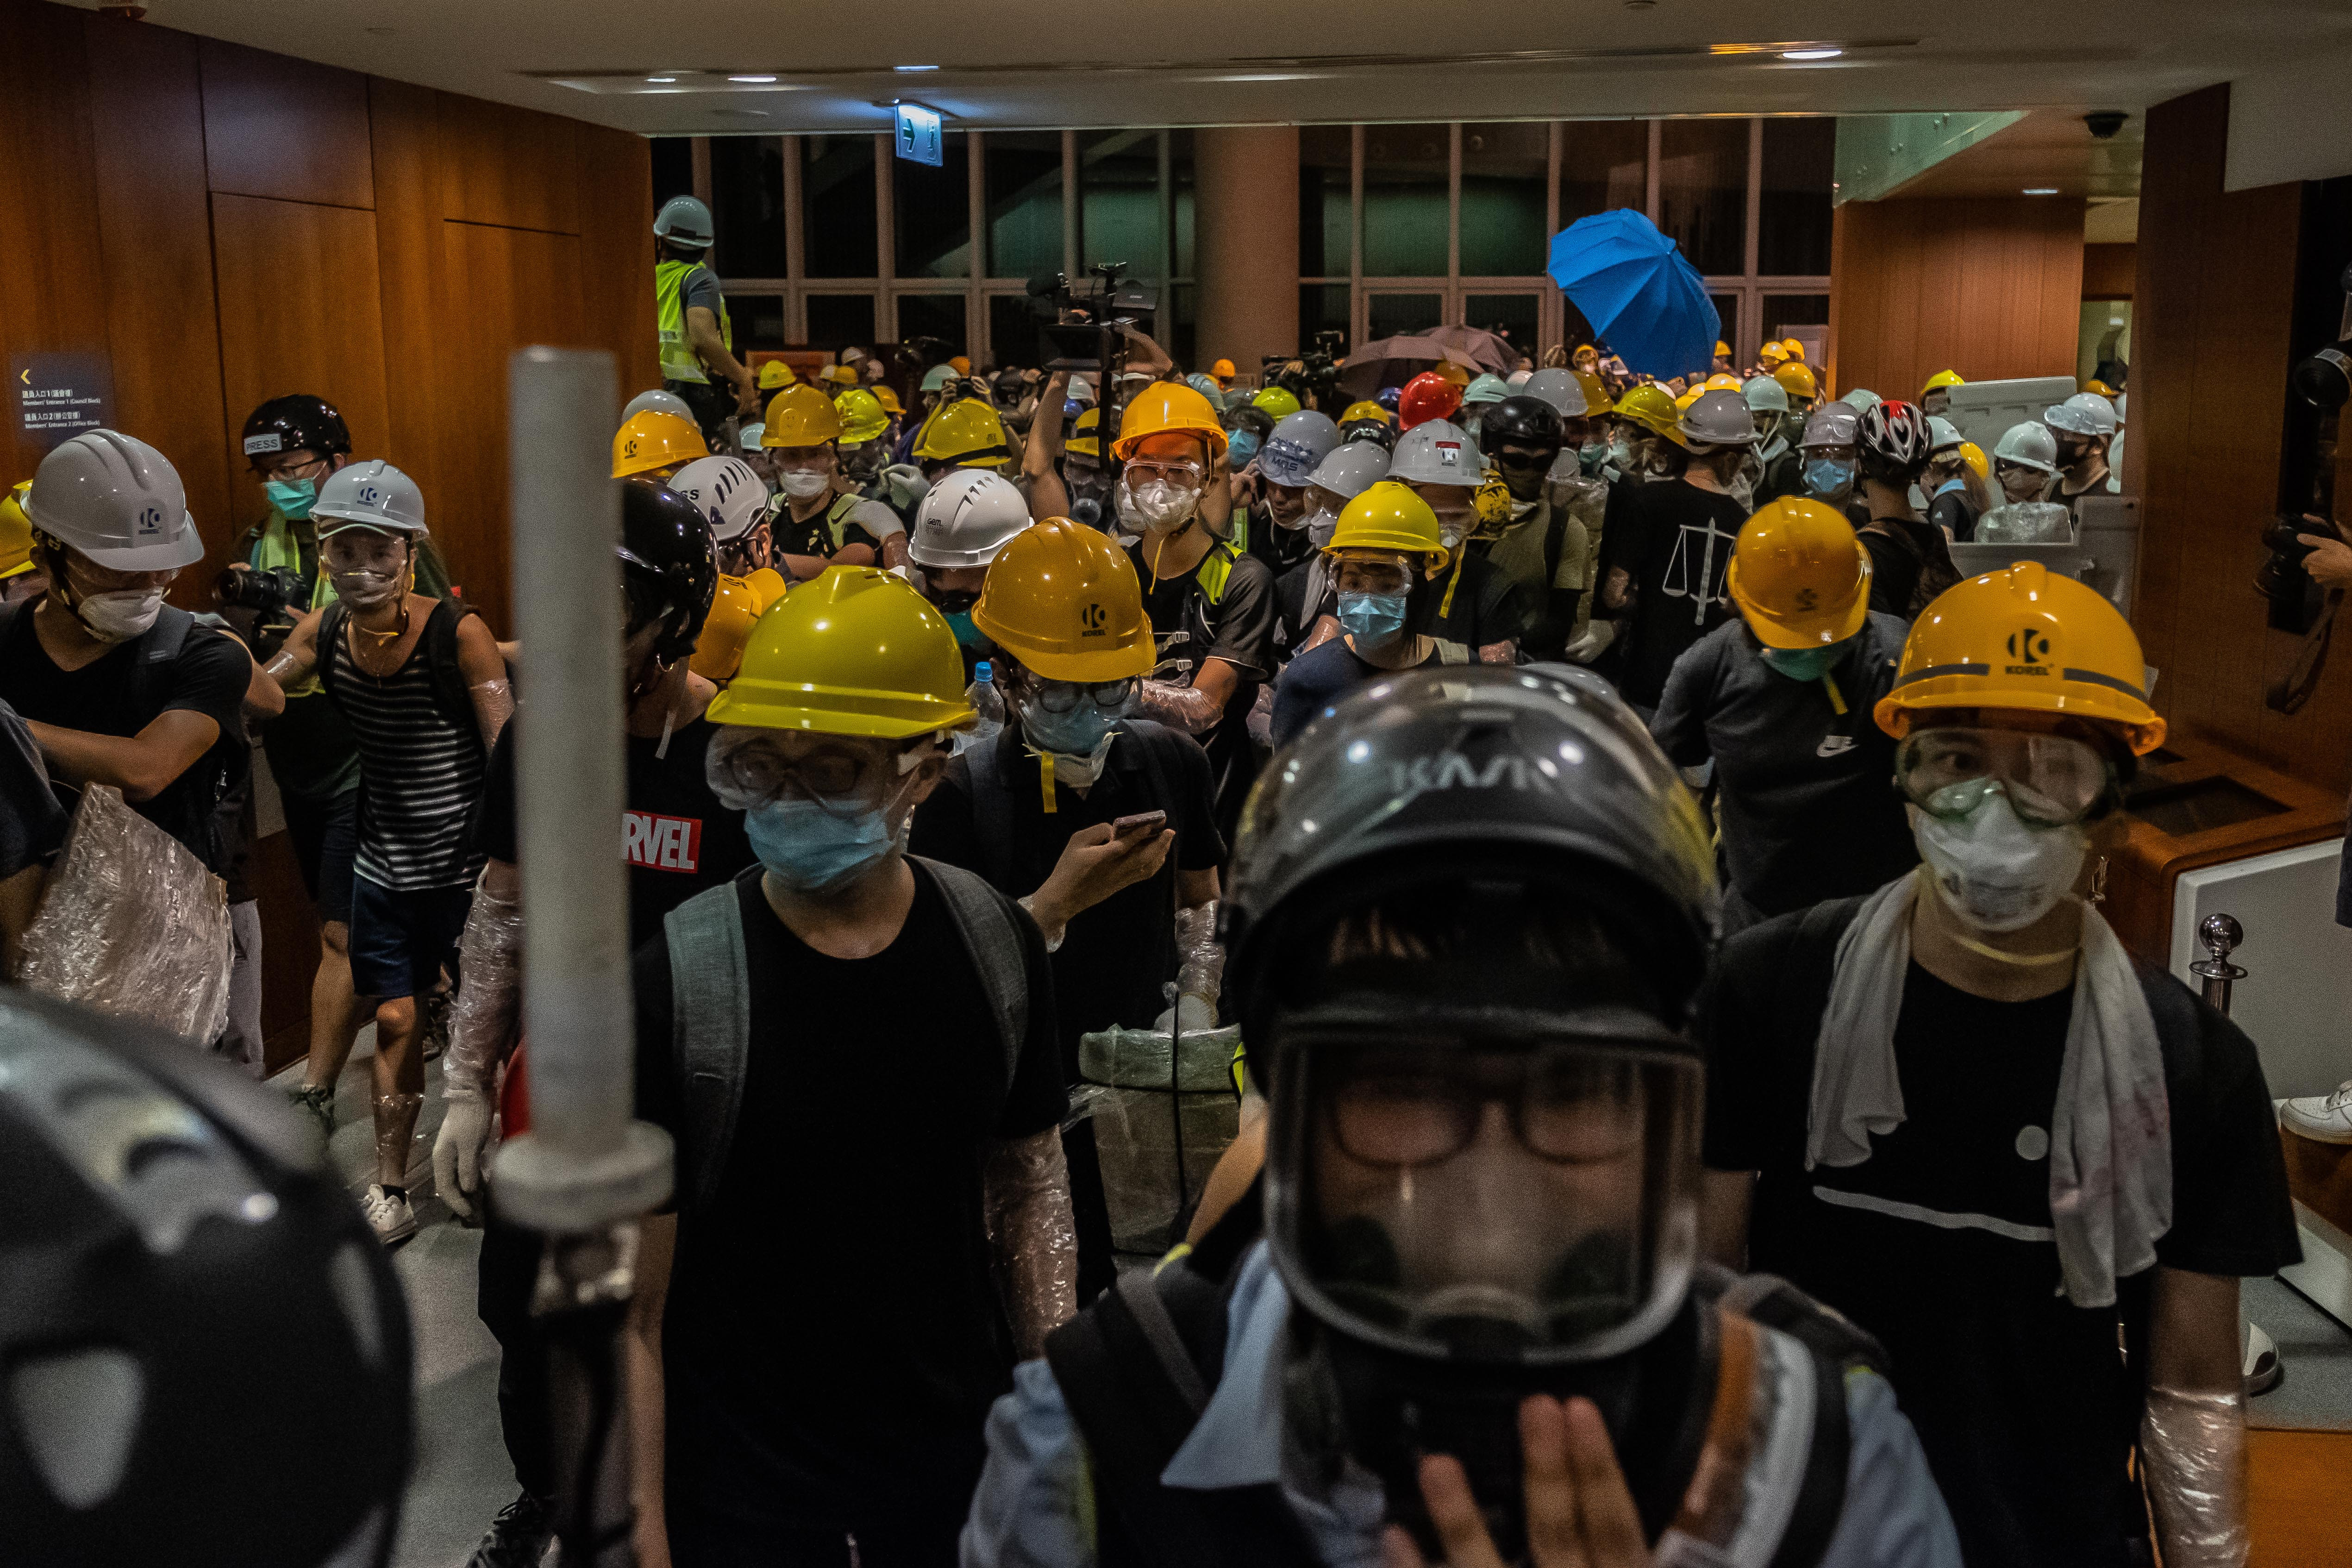 Protesters break into the Legislative Council Complex protest against the extradition bill on July 1, 2019 in Hong Kong, China. Hundreds of pro-democracy protesters broke into Hong Kong's legislature on Monday during the 22nd anniversary of the territory's return to China from Britain after riot police officers used batons and pepper spray to push back demonstrators. The city's embattled leader Carrie Lam watched a flag-raising ceremony on a video display from inside a convention center, citing bad weather, as tens of thousands protesters marched separately after the ceremony that morning. (Photo by Billy H.C. Kwok/Getty Images)